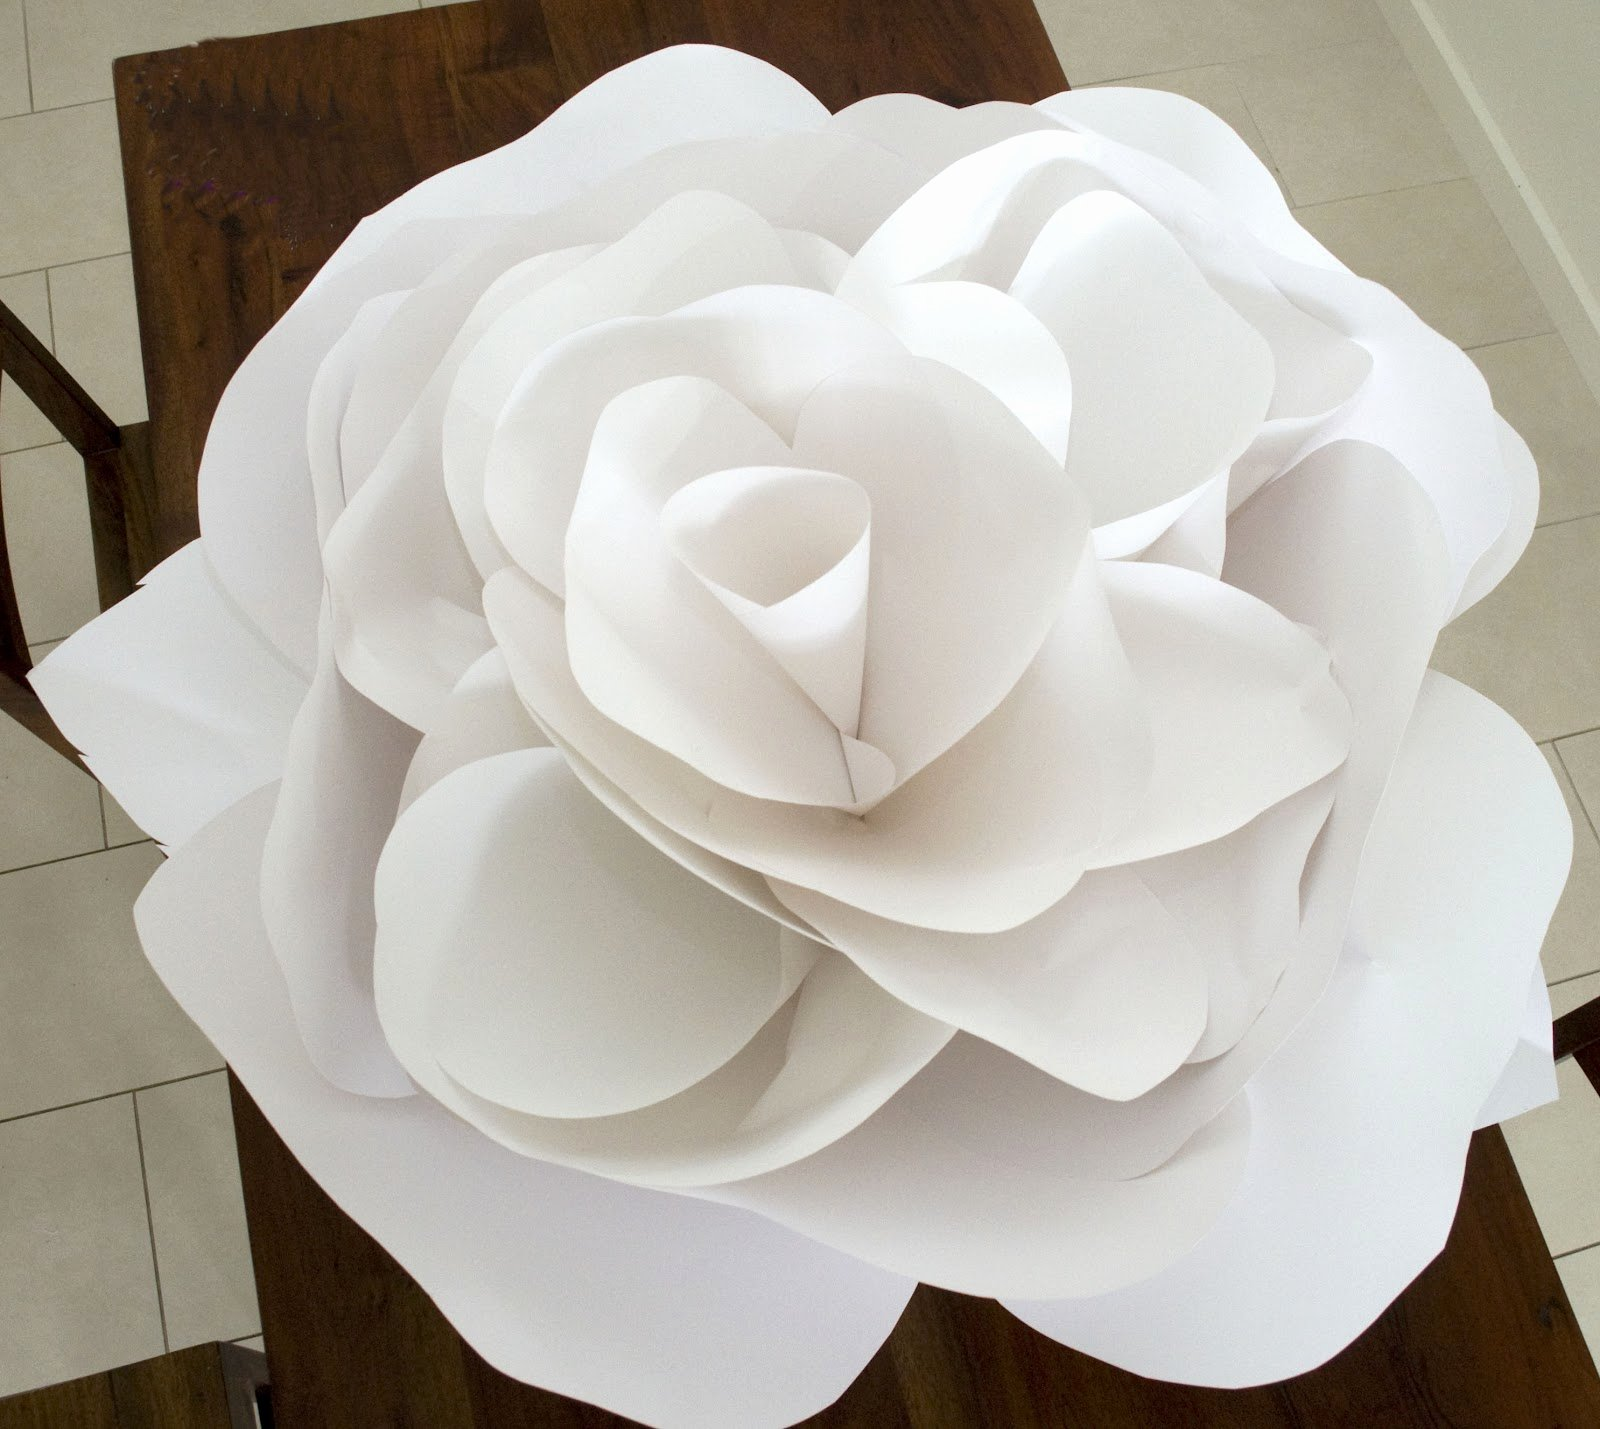 Template for Paper Flowers Elegant Grace Designs Giant Paper Flowers